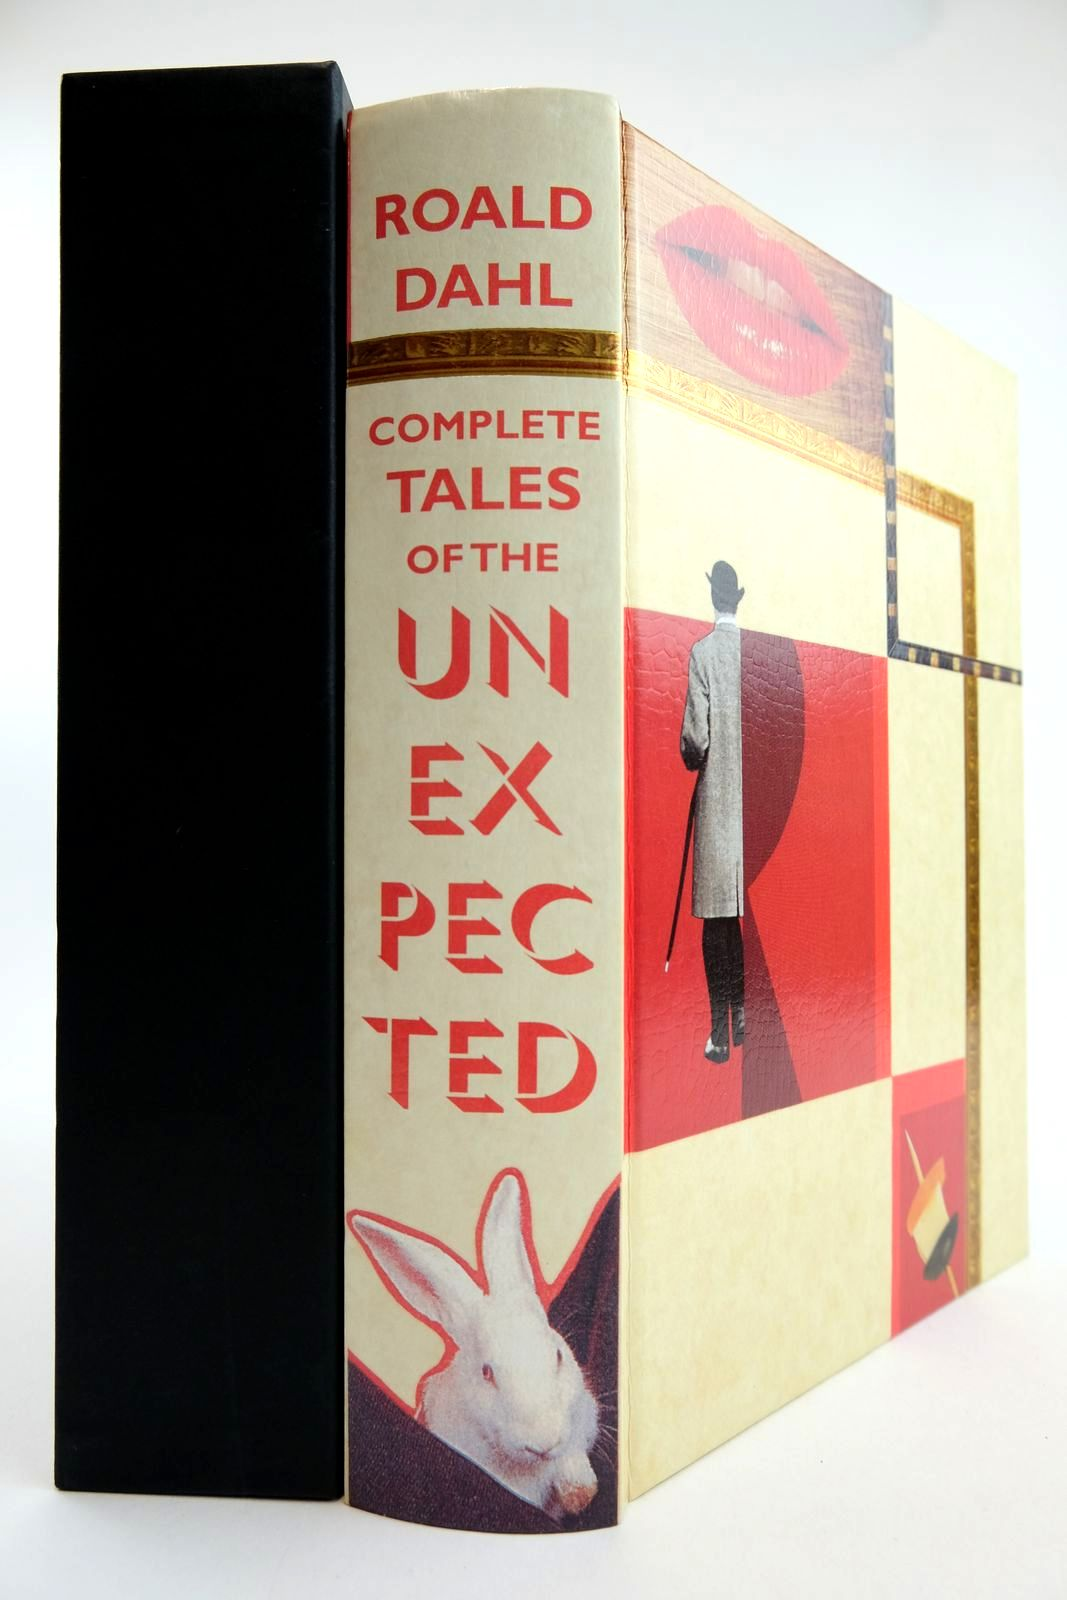 Photo of THE COMPLETE TALES OF THE UNEXPECTED AND OTHER STORIES written by Dahl, Roald illustrated by Smithson, Helen published by Folio Society (STOCK CODE: 2132398)  for sale by Stella & Rose's Books